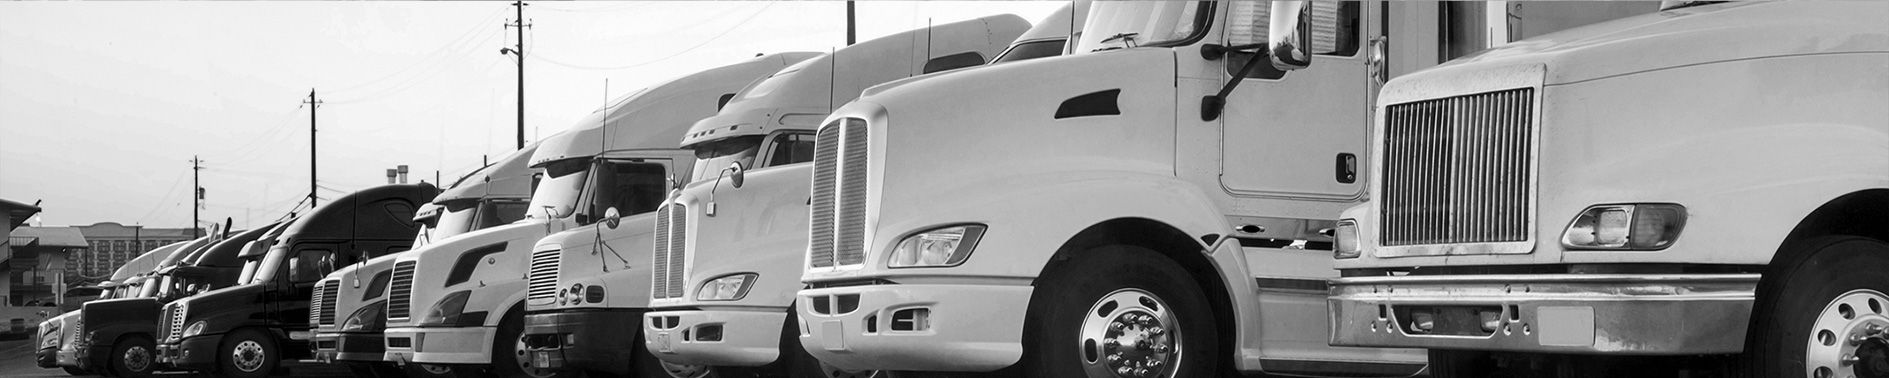 Semi Trucks FMP Fleet Supply Chain Solutions